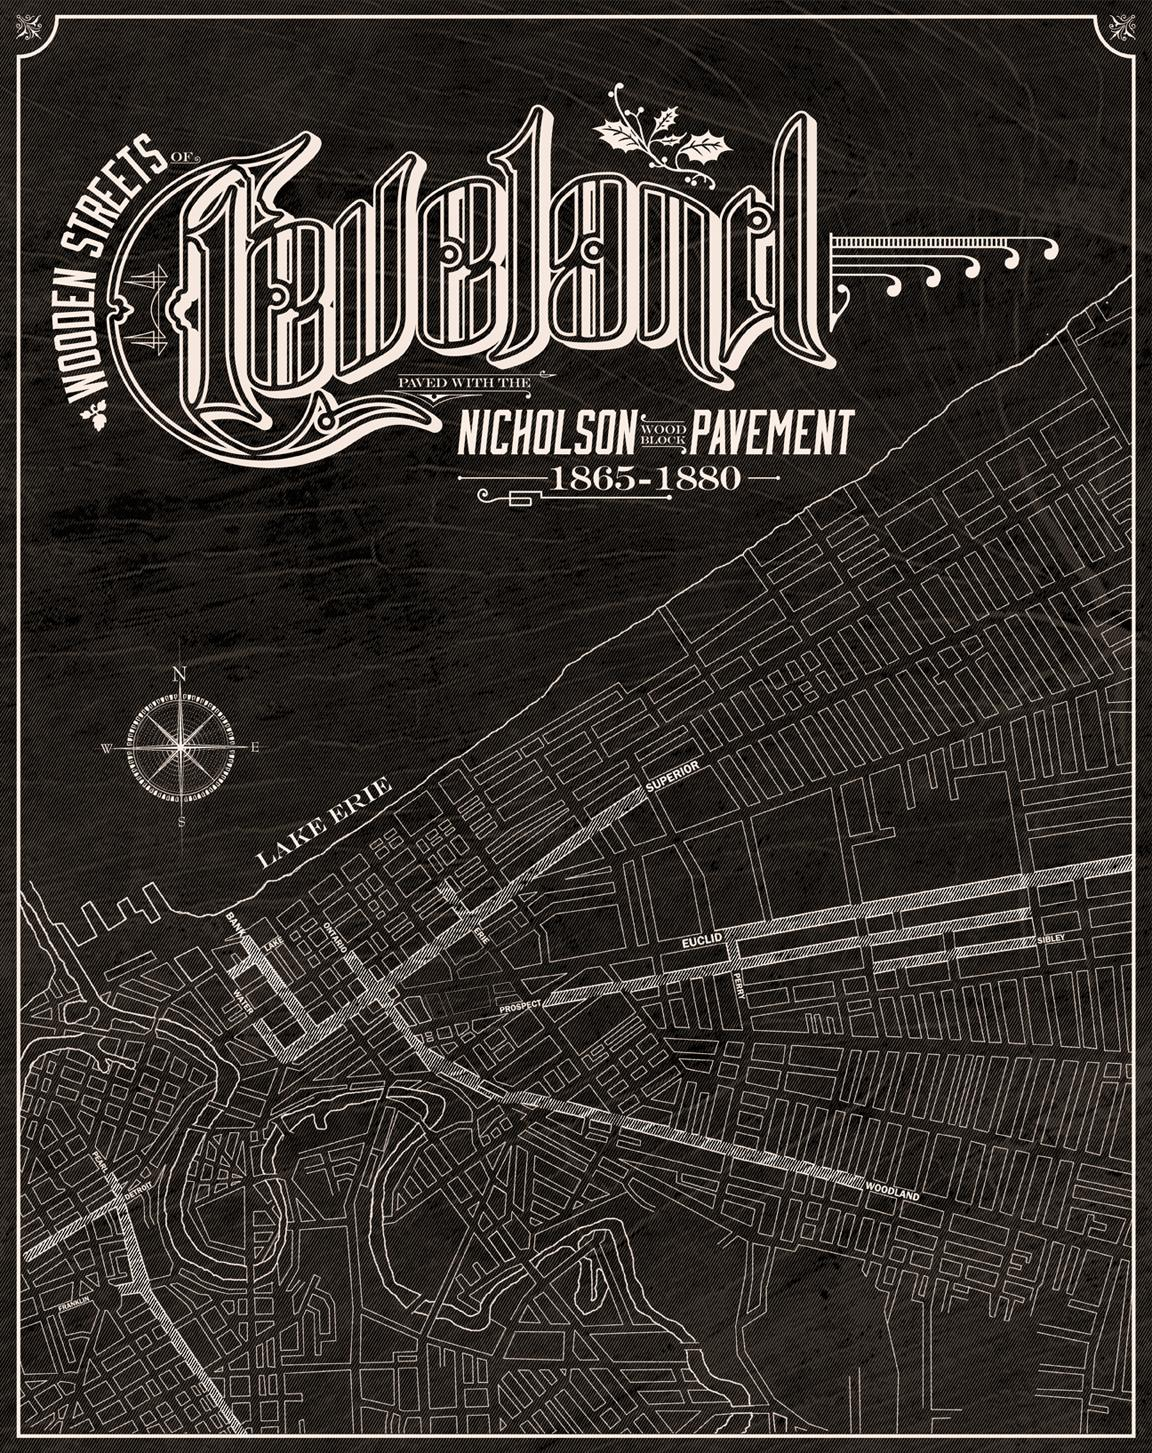 Wooden Streets of Cleveland - image 1 - student project